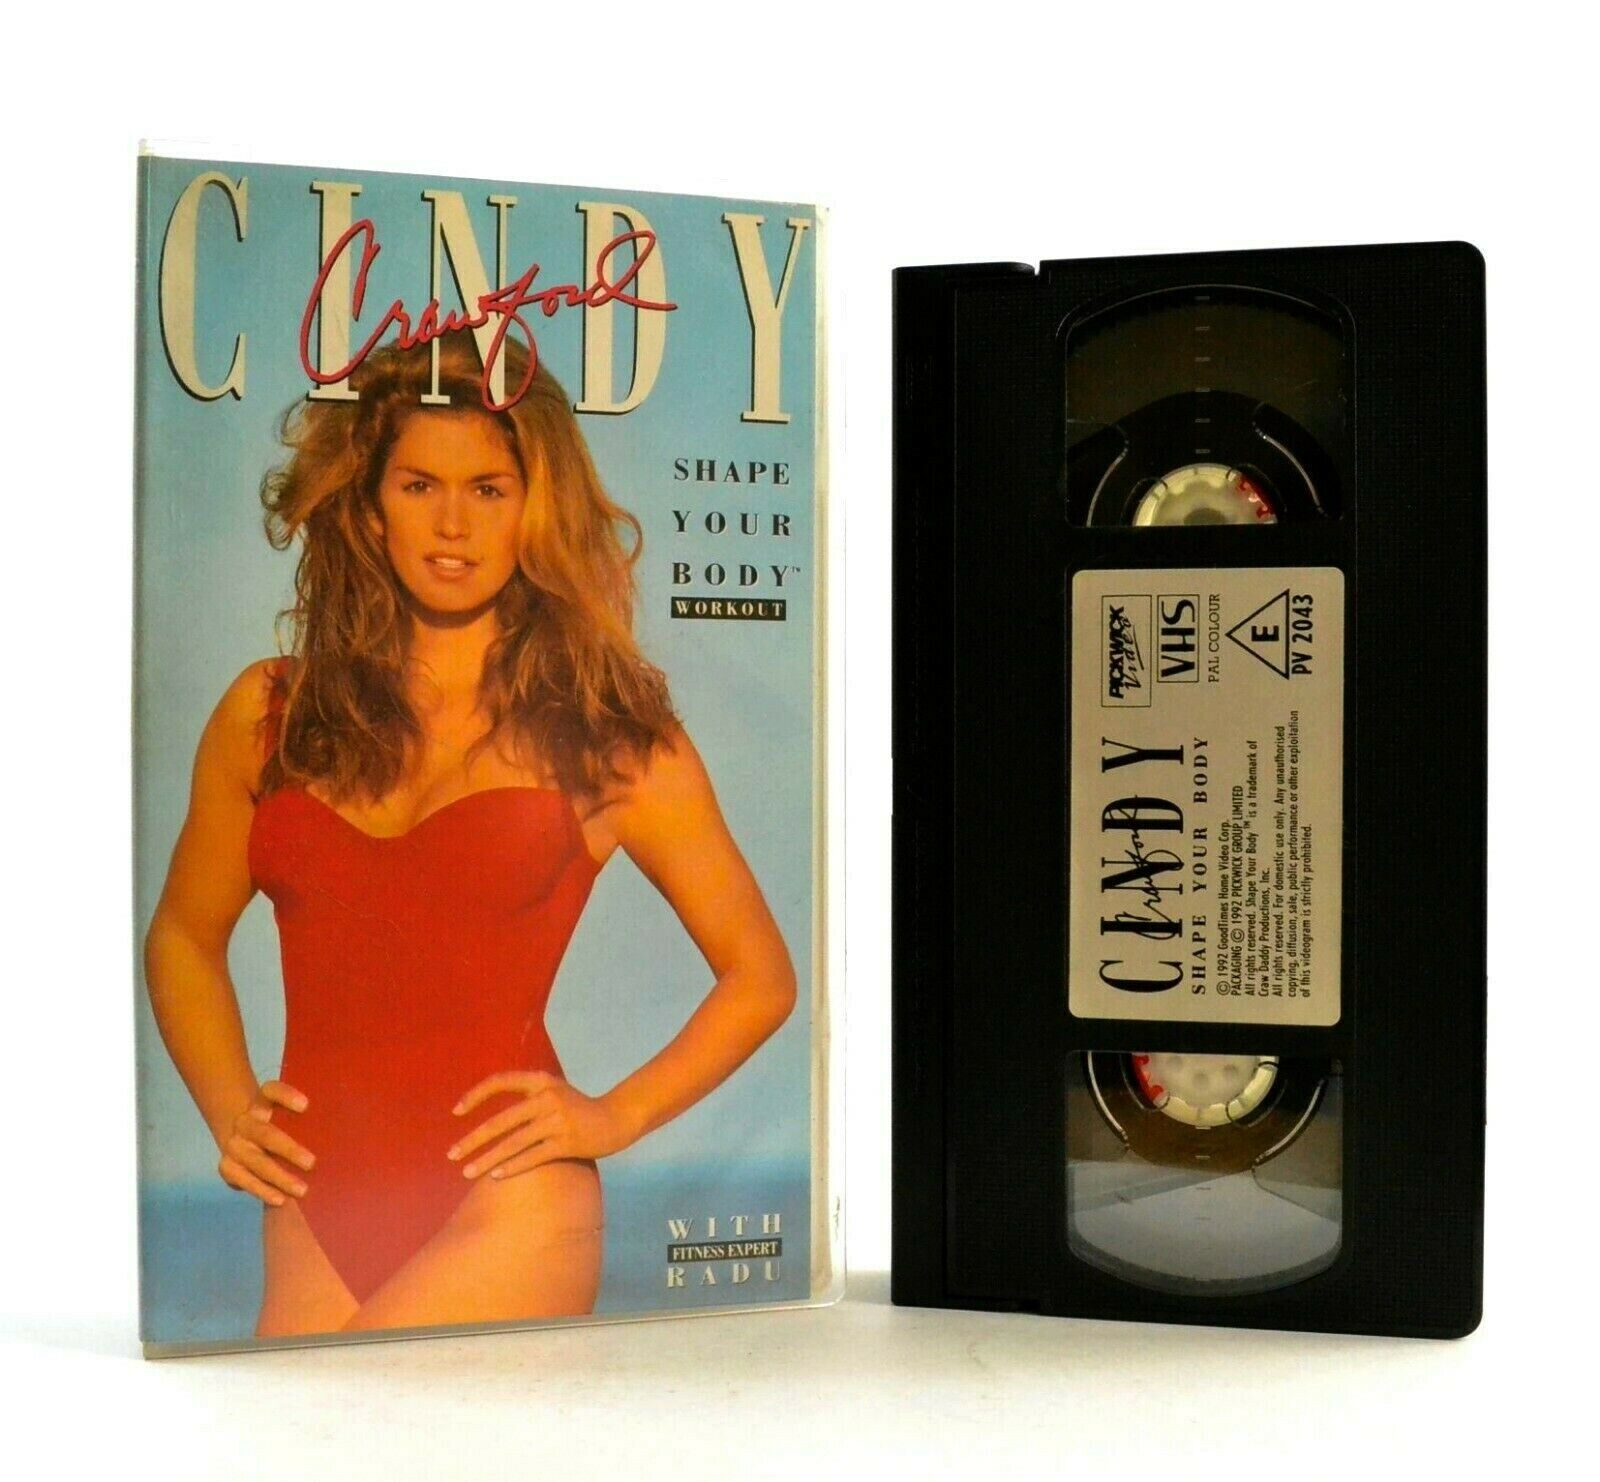 Cindy Crawford: Shape Your Body - Workout - Fitness - Exercises - Beauty - VHS